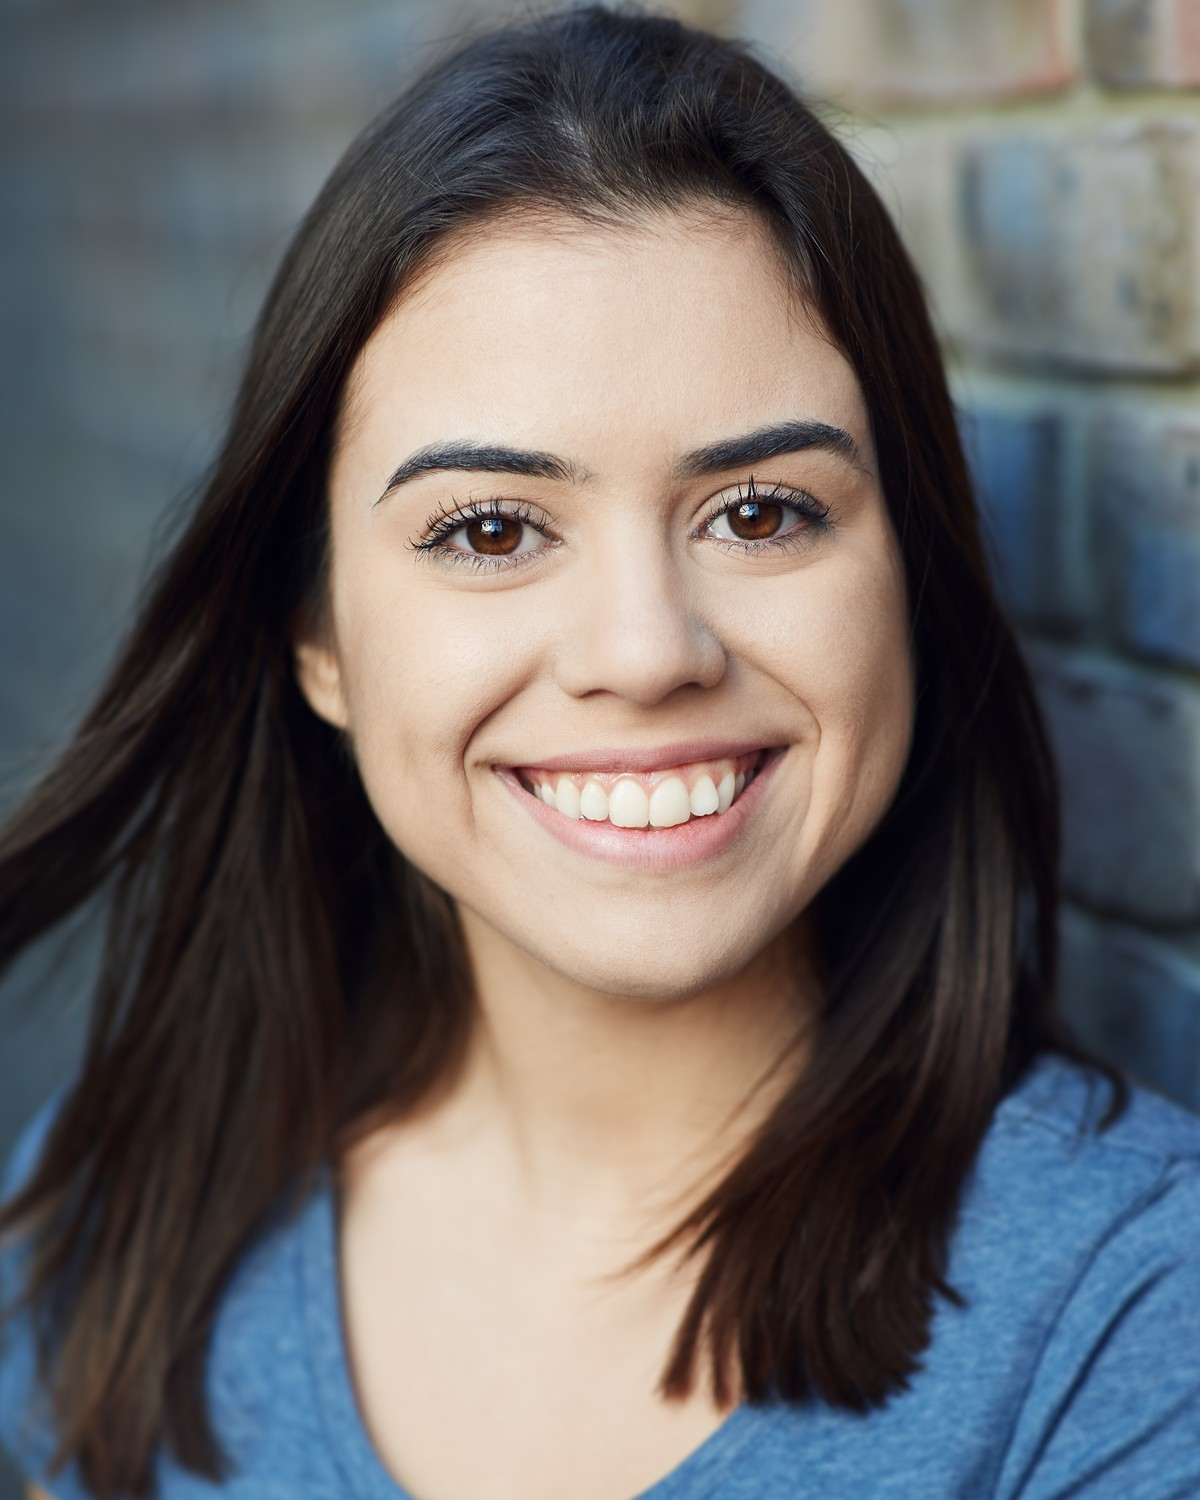 Finding the best Actor Headshot Photographer for you!